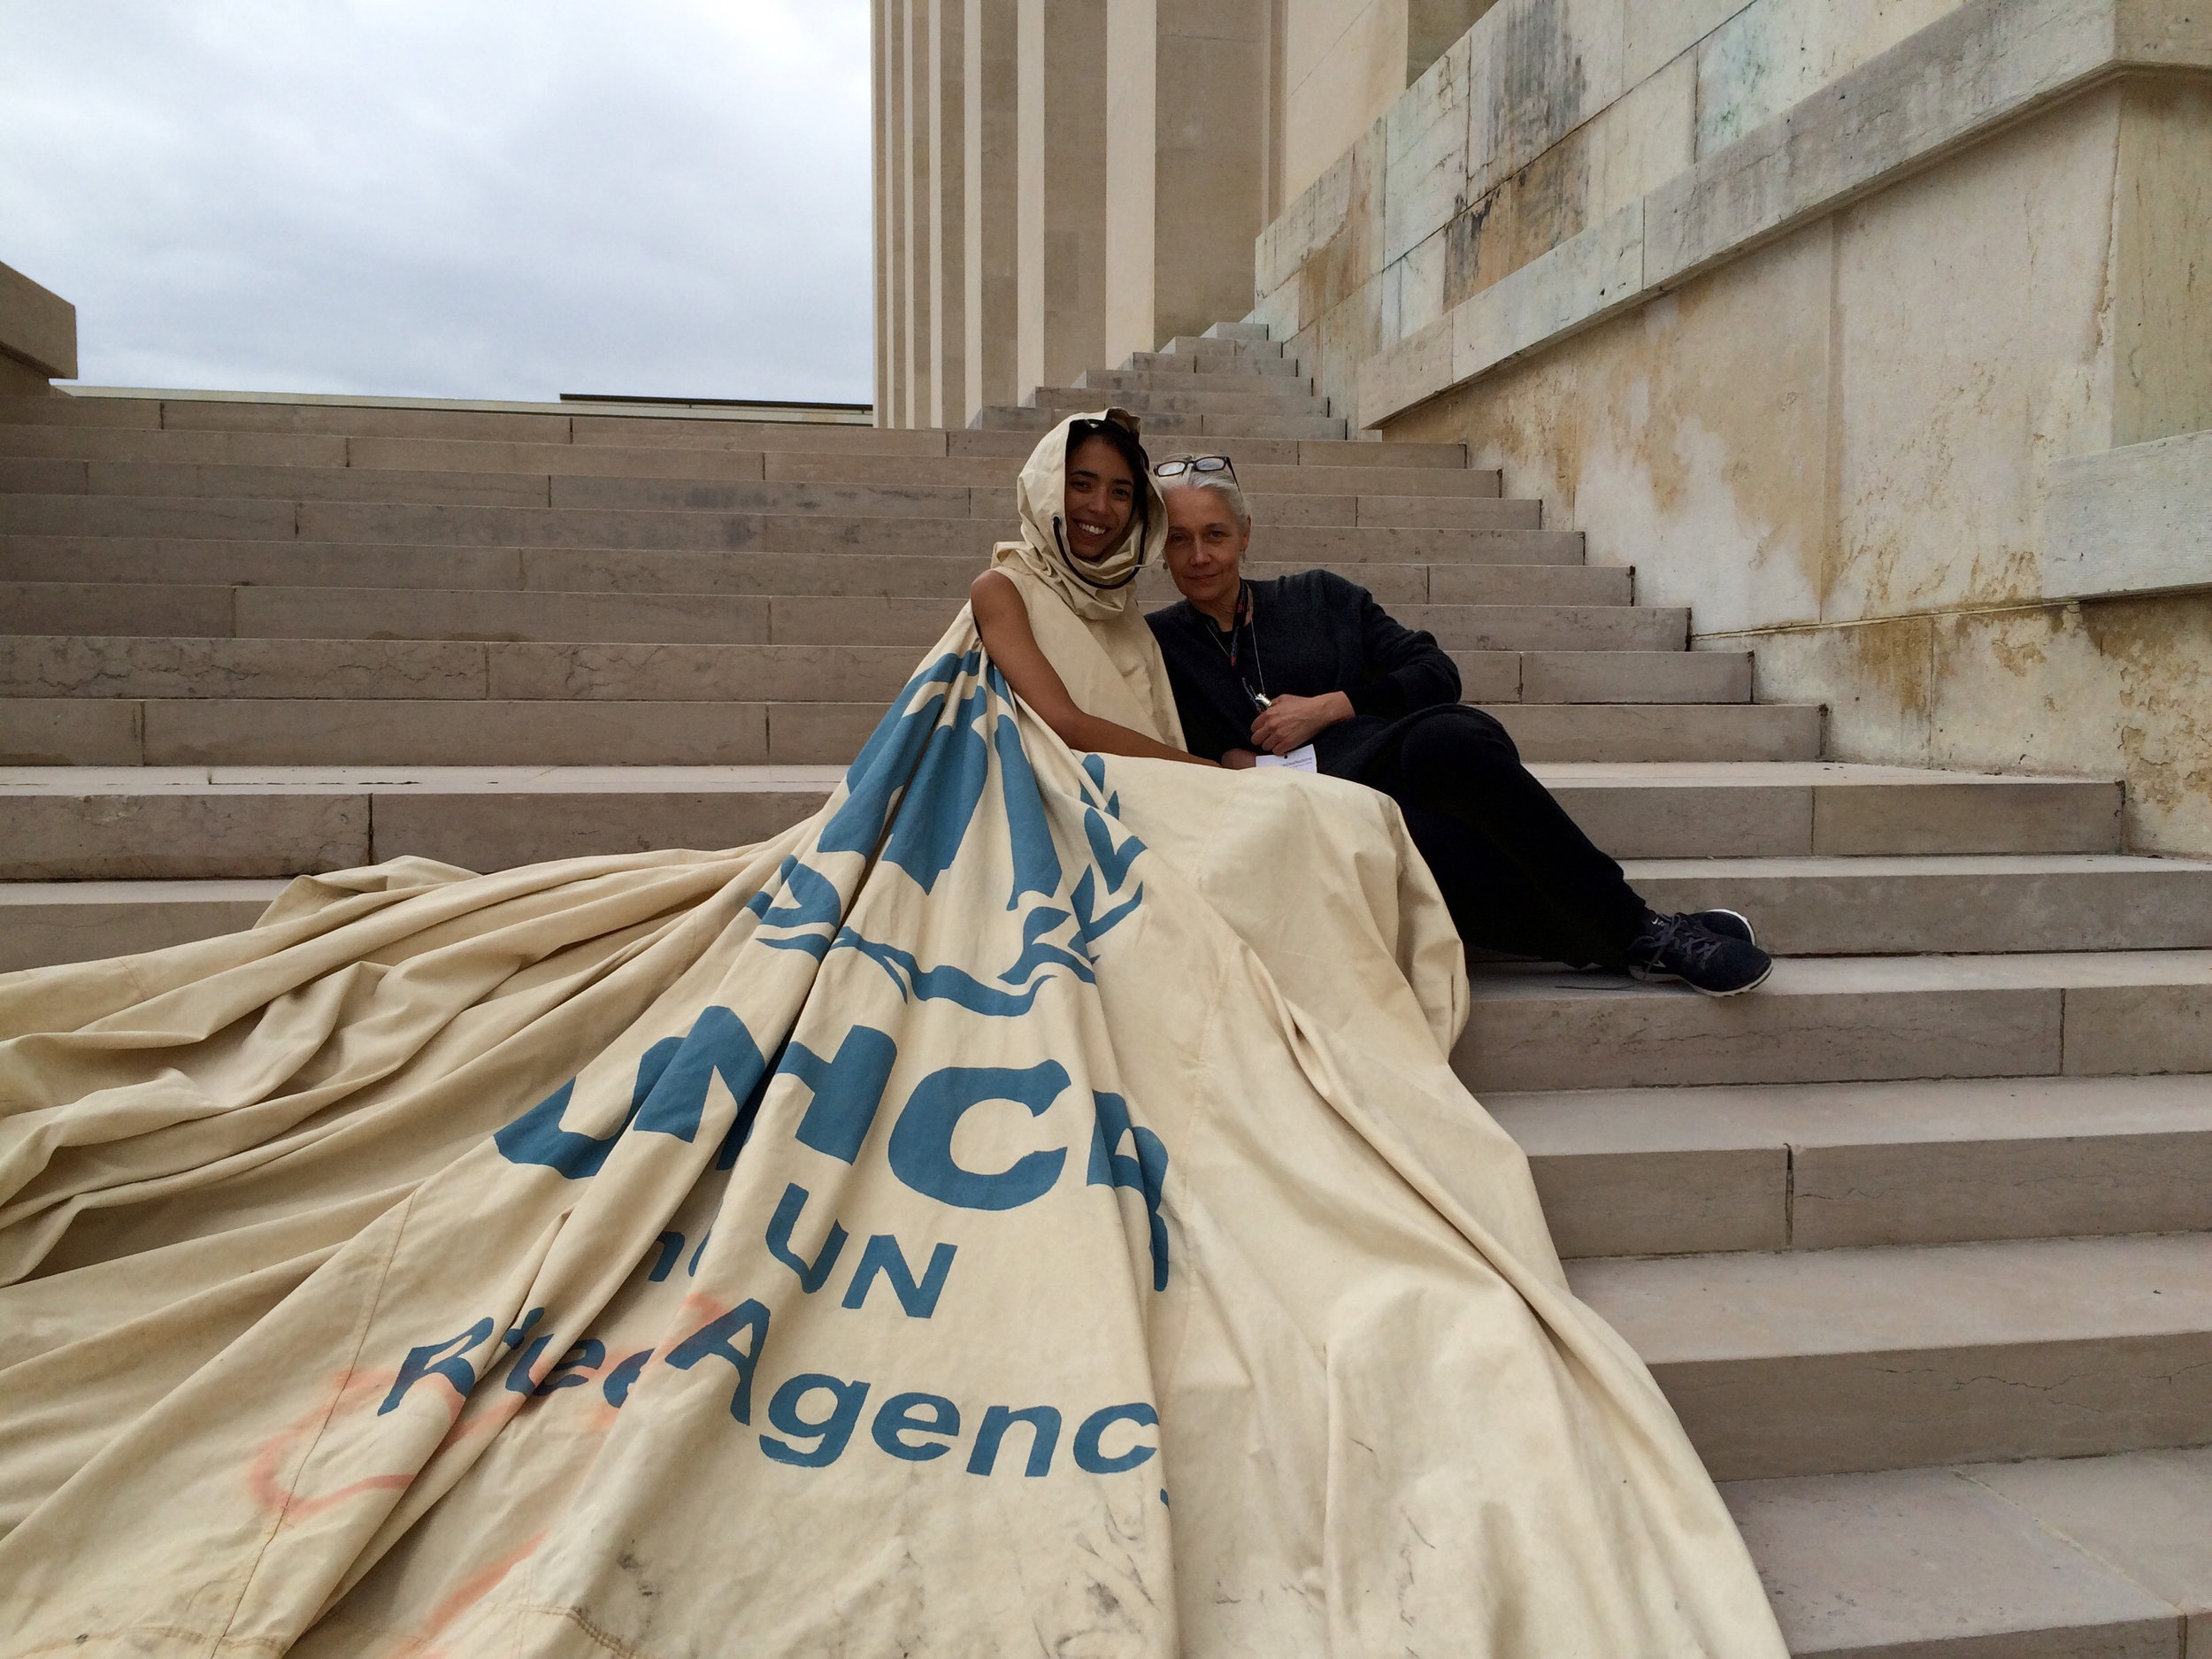 Dress For Our Time - On the steps of the UN Geneva